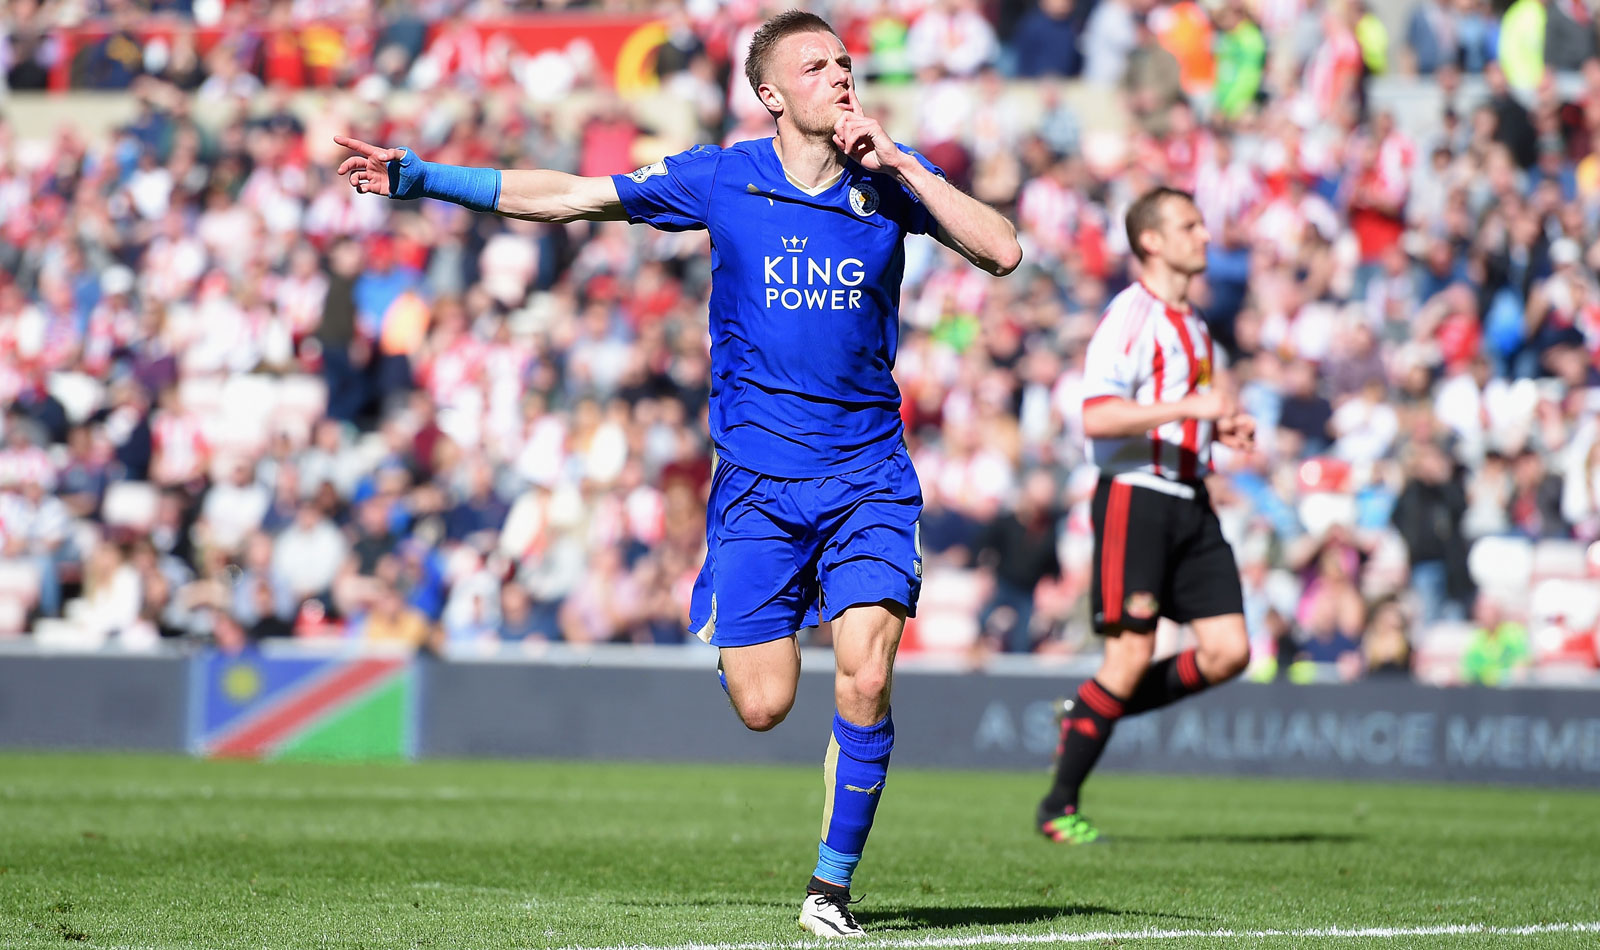 It went overlooked given the club's title aspirations, but Leicester clinched an almost equally improbable place in next season's Champions League with a 2-0 win at Sunderland, cementing a top-four place. Jamie Vardy's two goals did the honors.